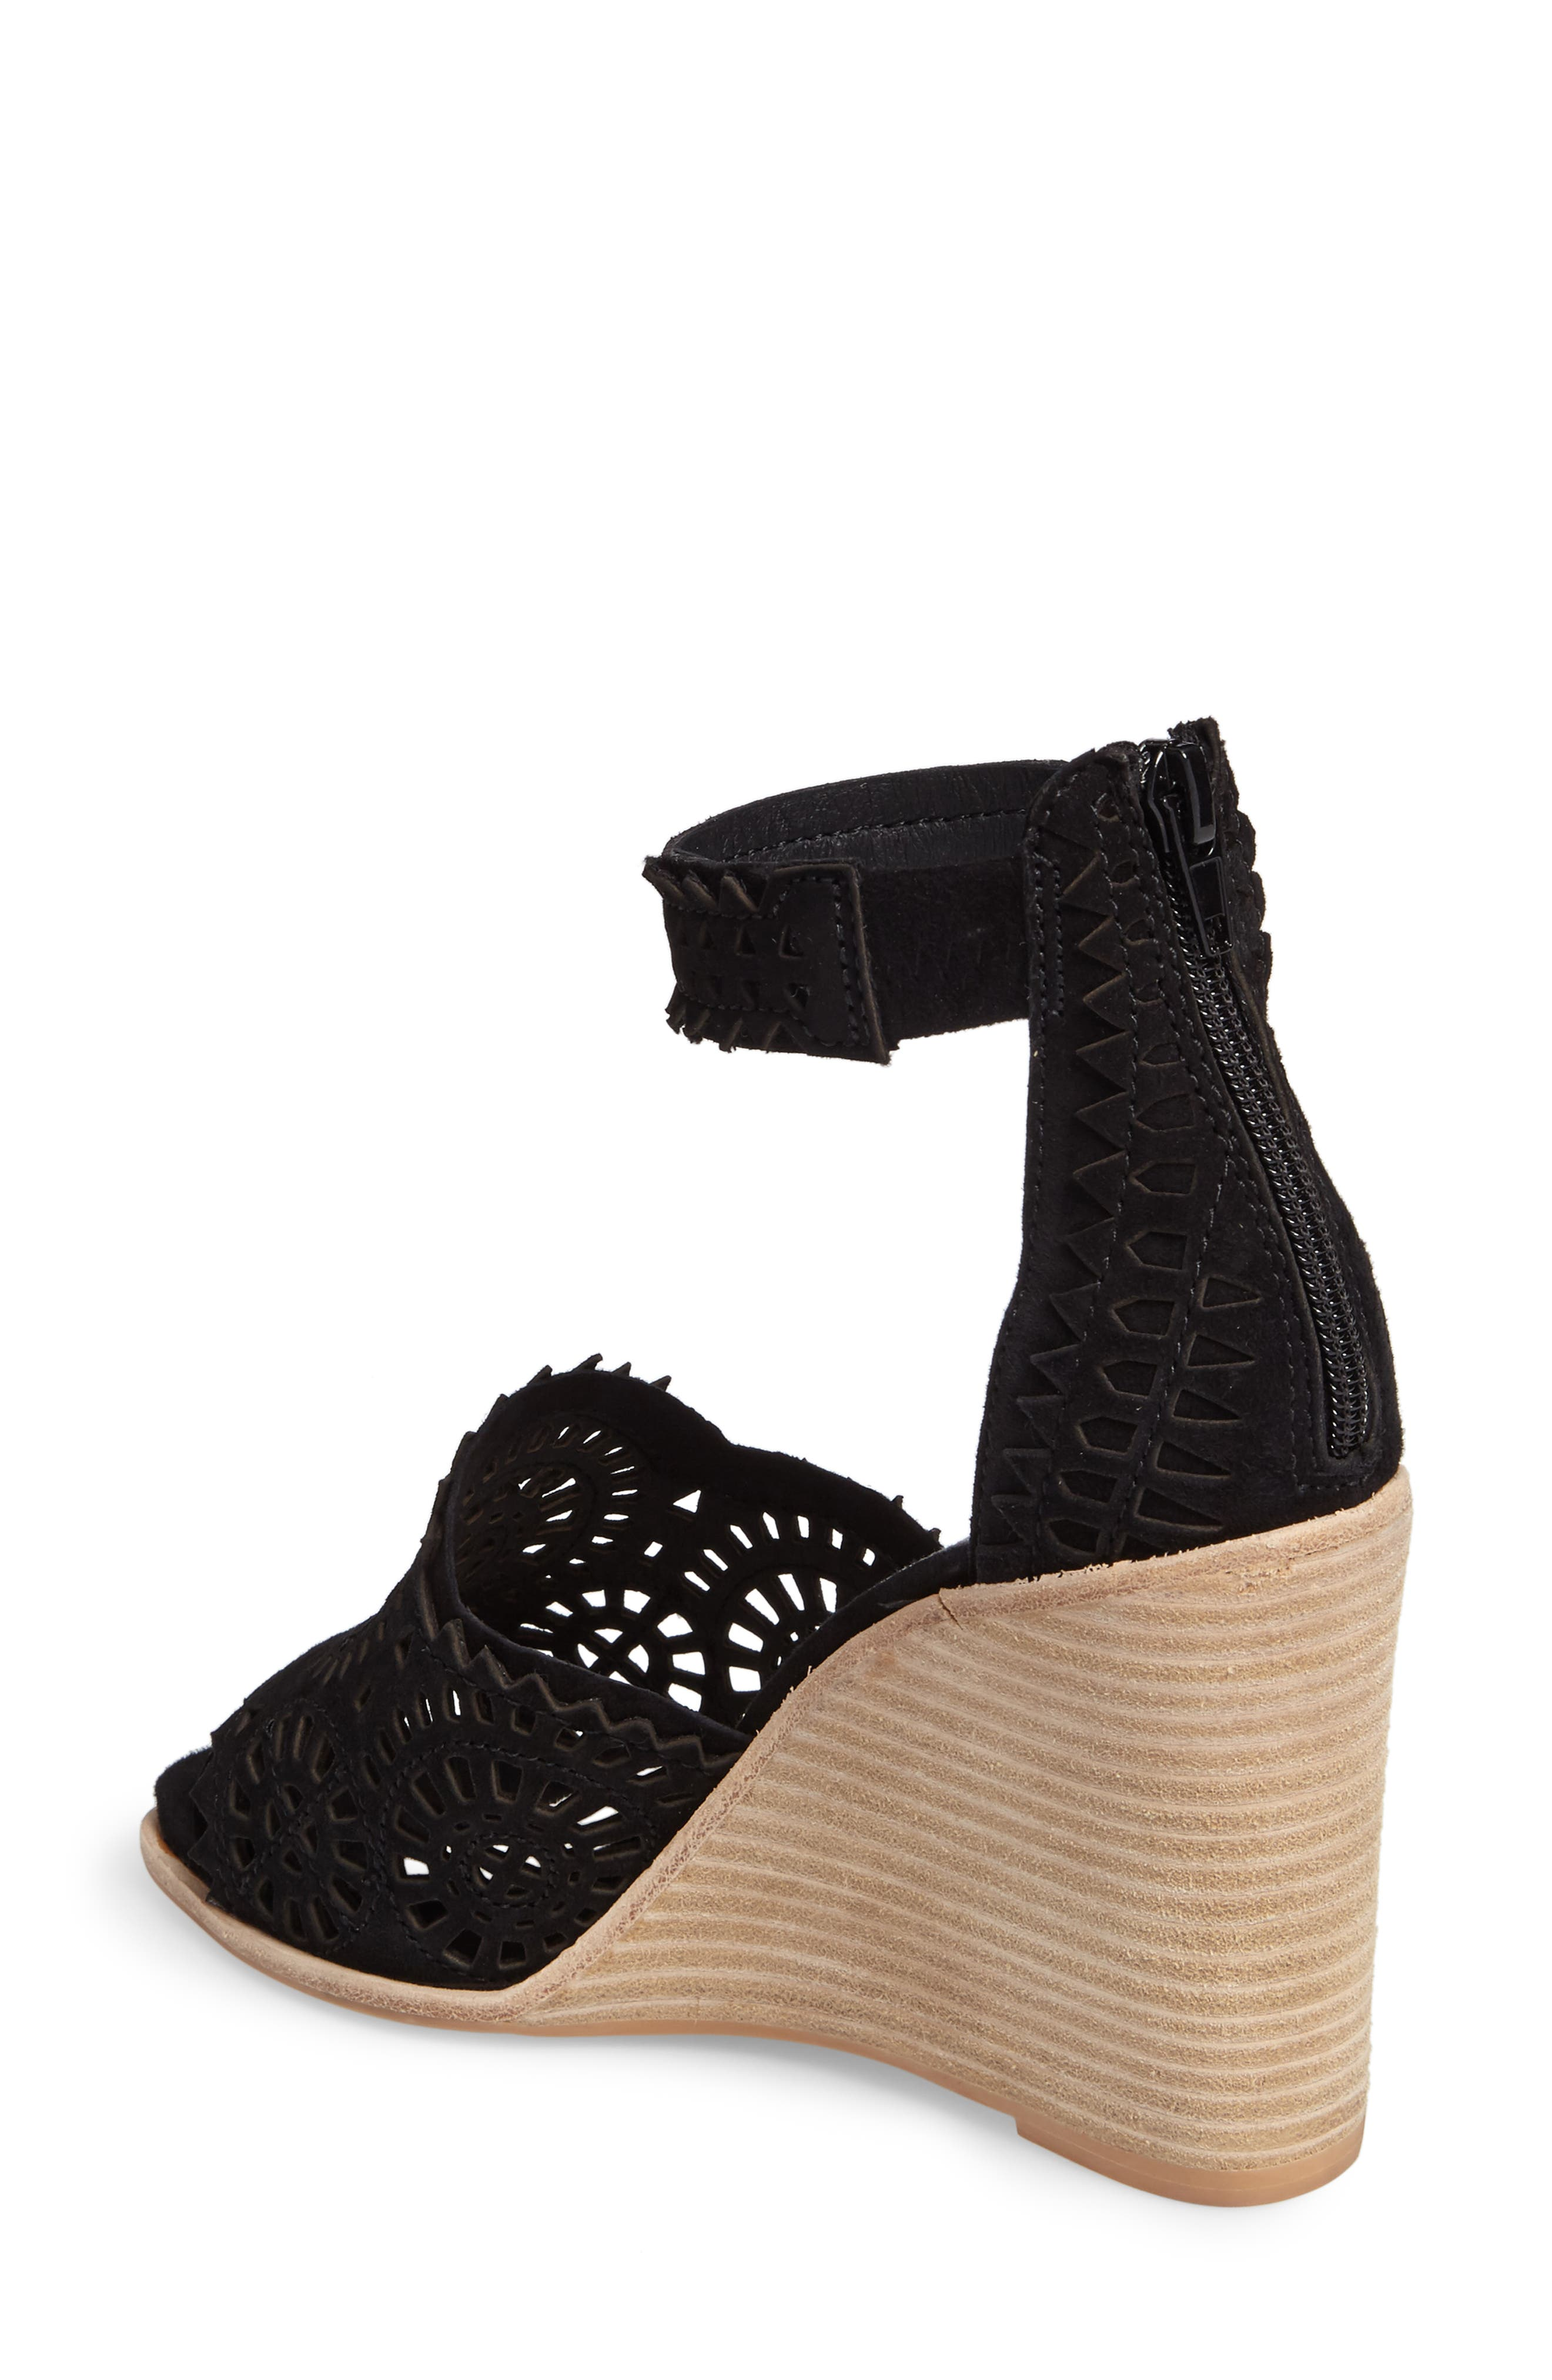 Del Sol Wedge Sandal,                             Alternate thumbnail 2, color,                             004